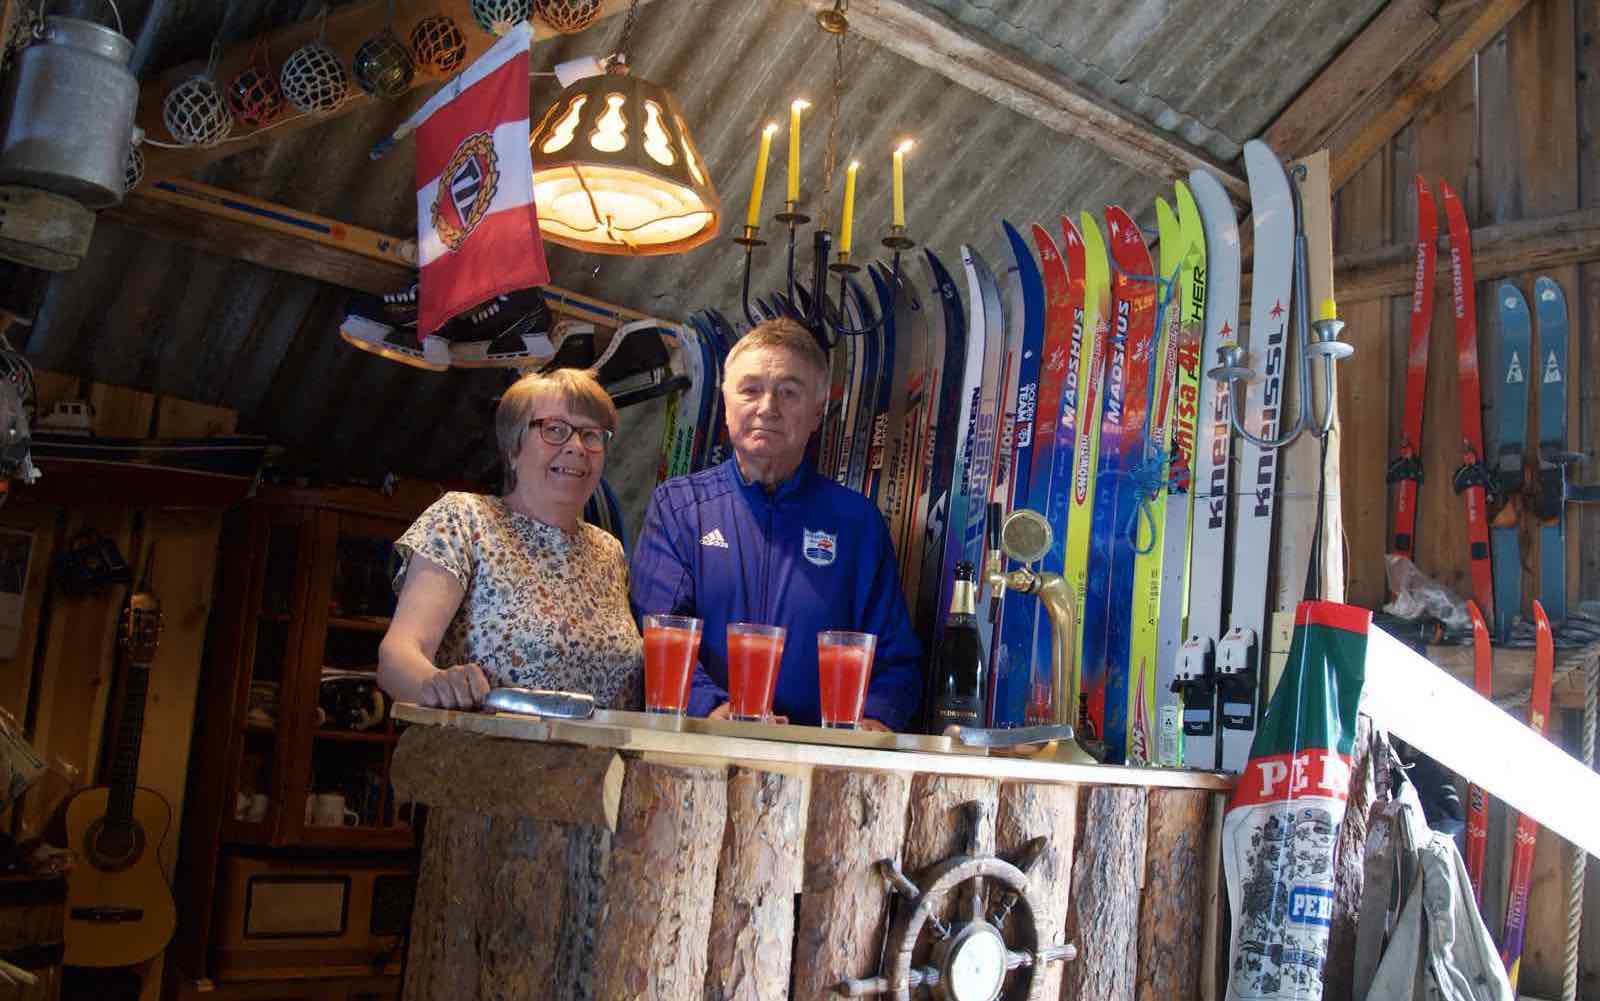 TJA SPORTSBAR is the most northern sportsbar in Europe, hosted by Ruth and Ole Kristian